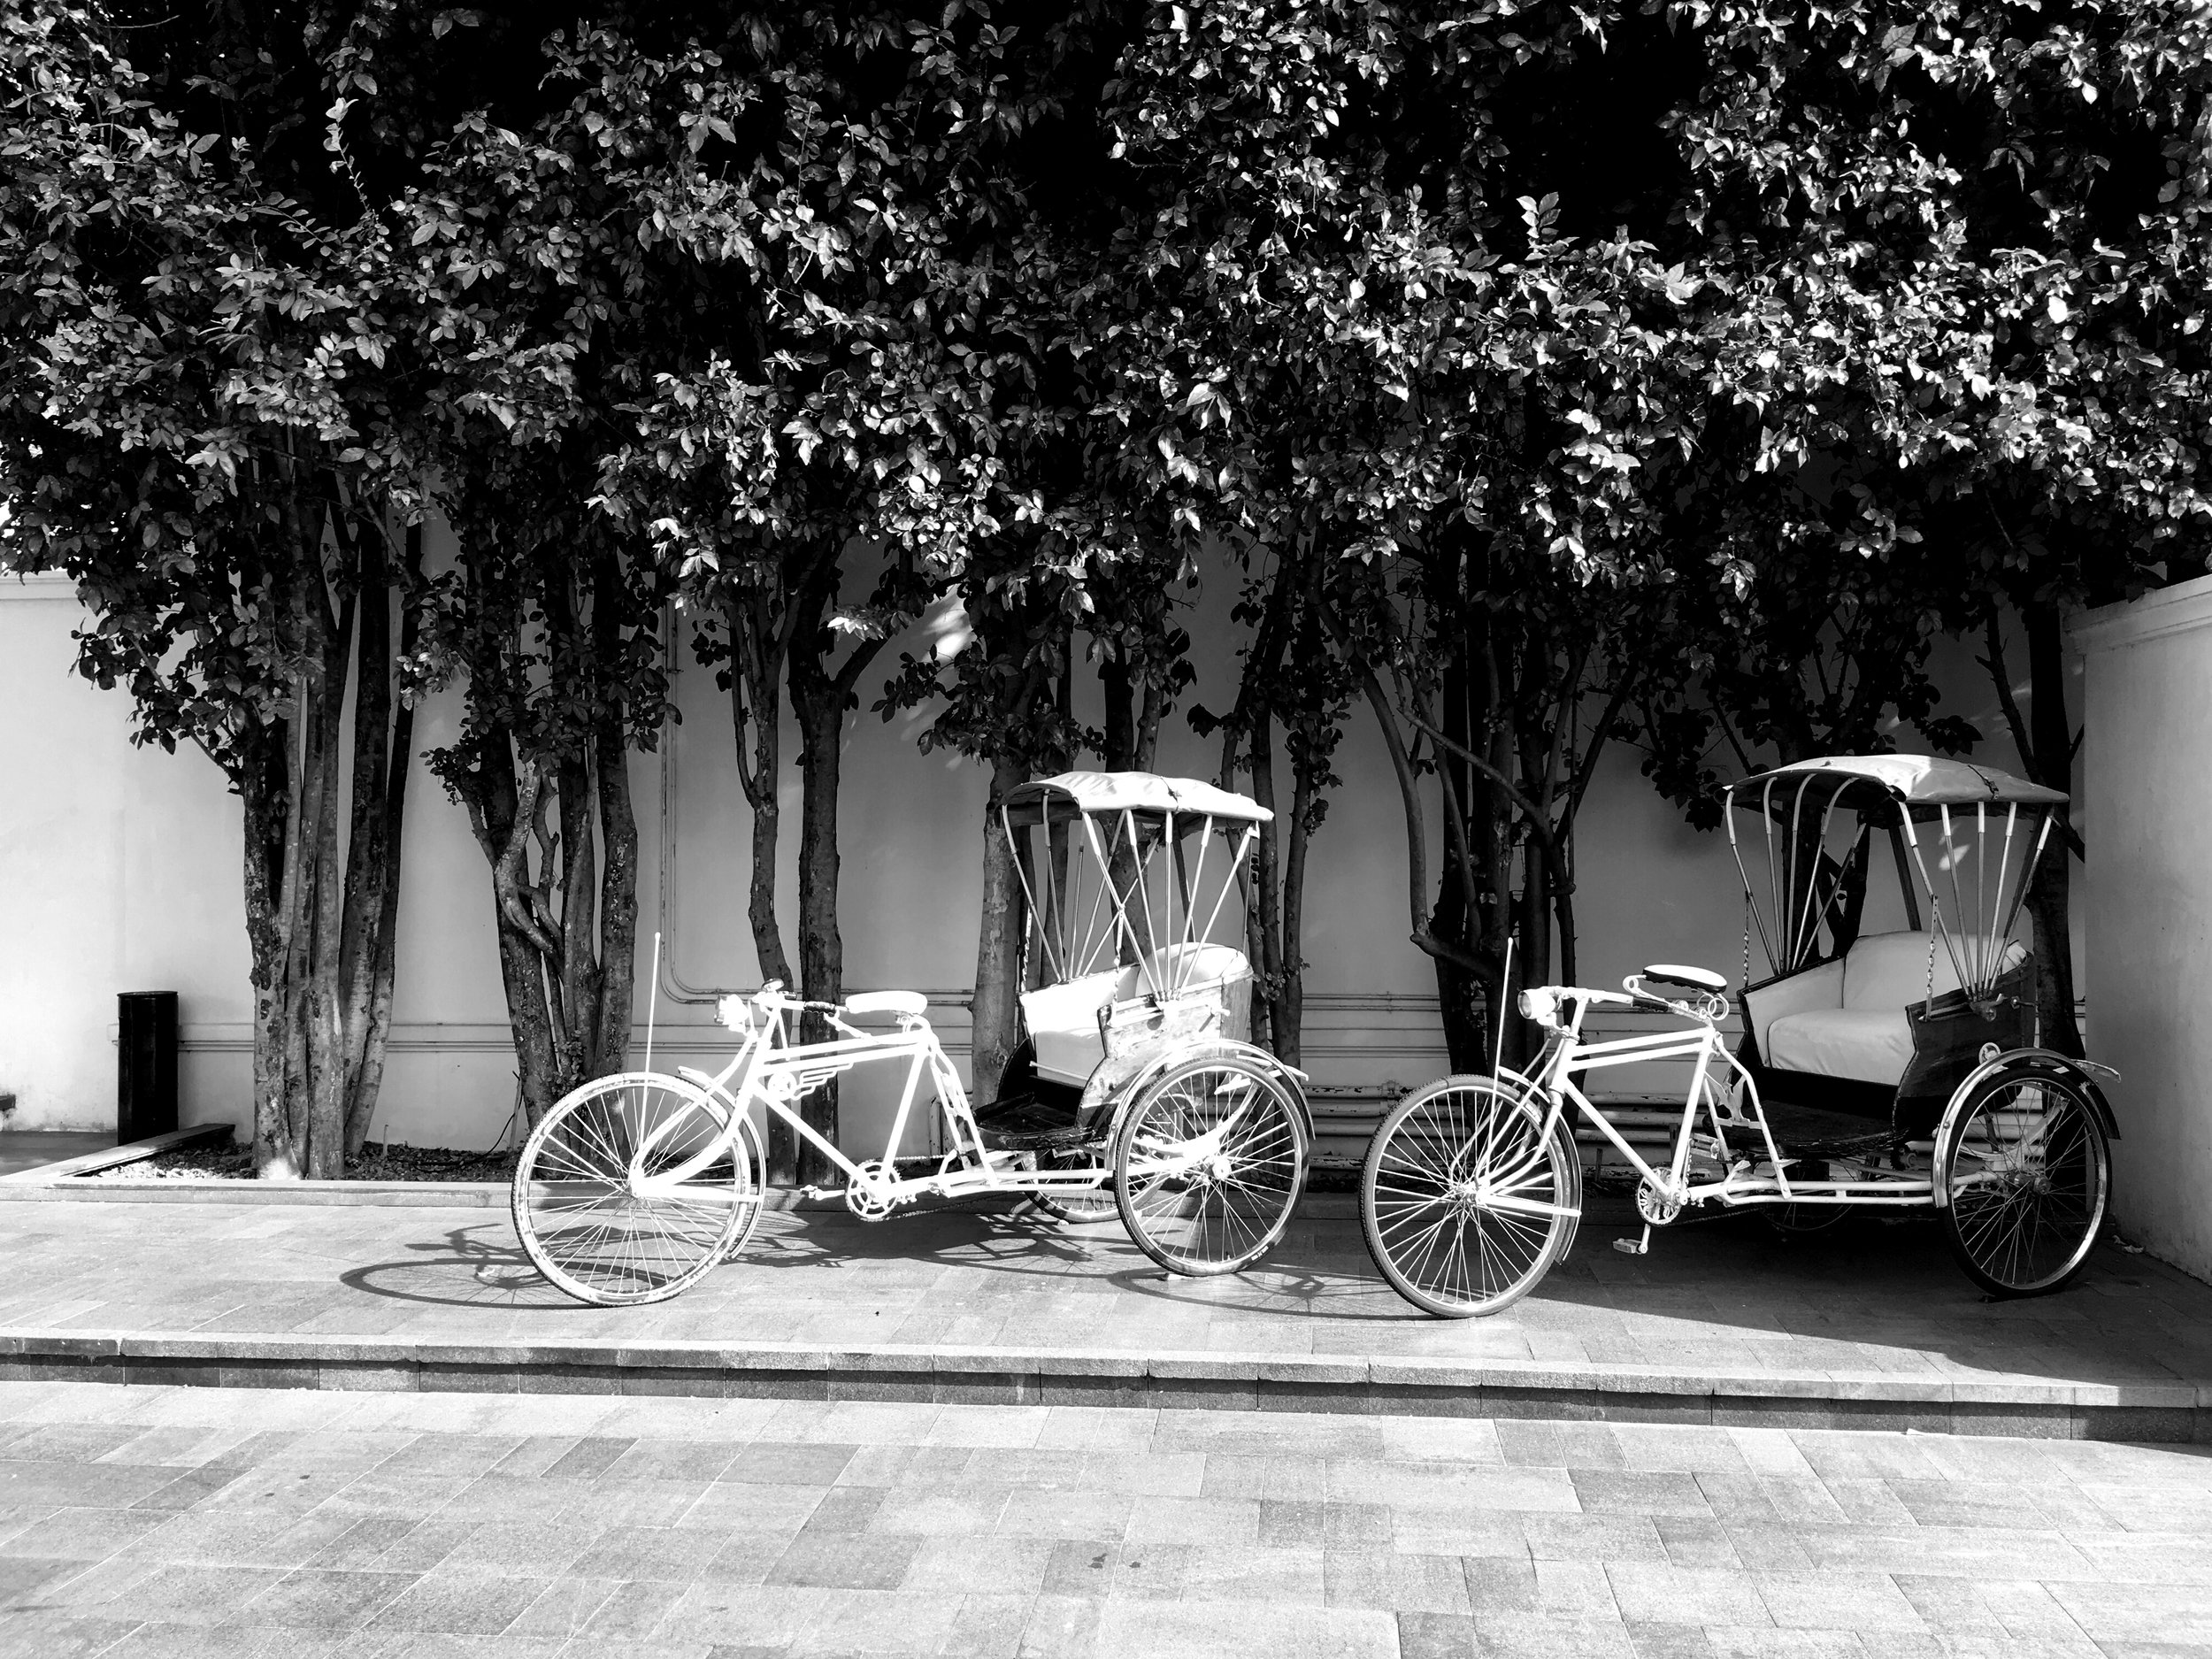 These bicycle tuk-tuks sit out front of the 137 Pillars hotel